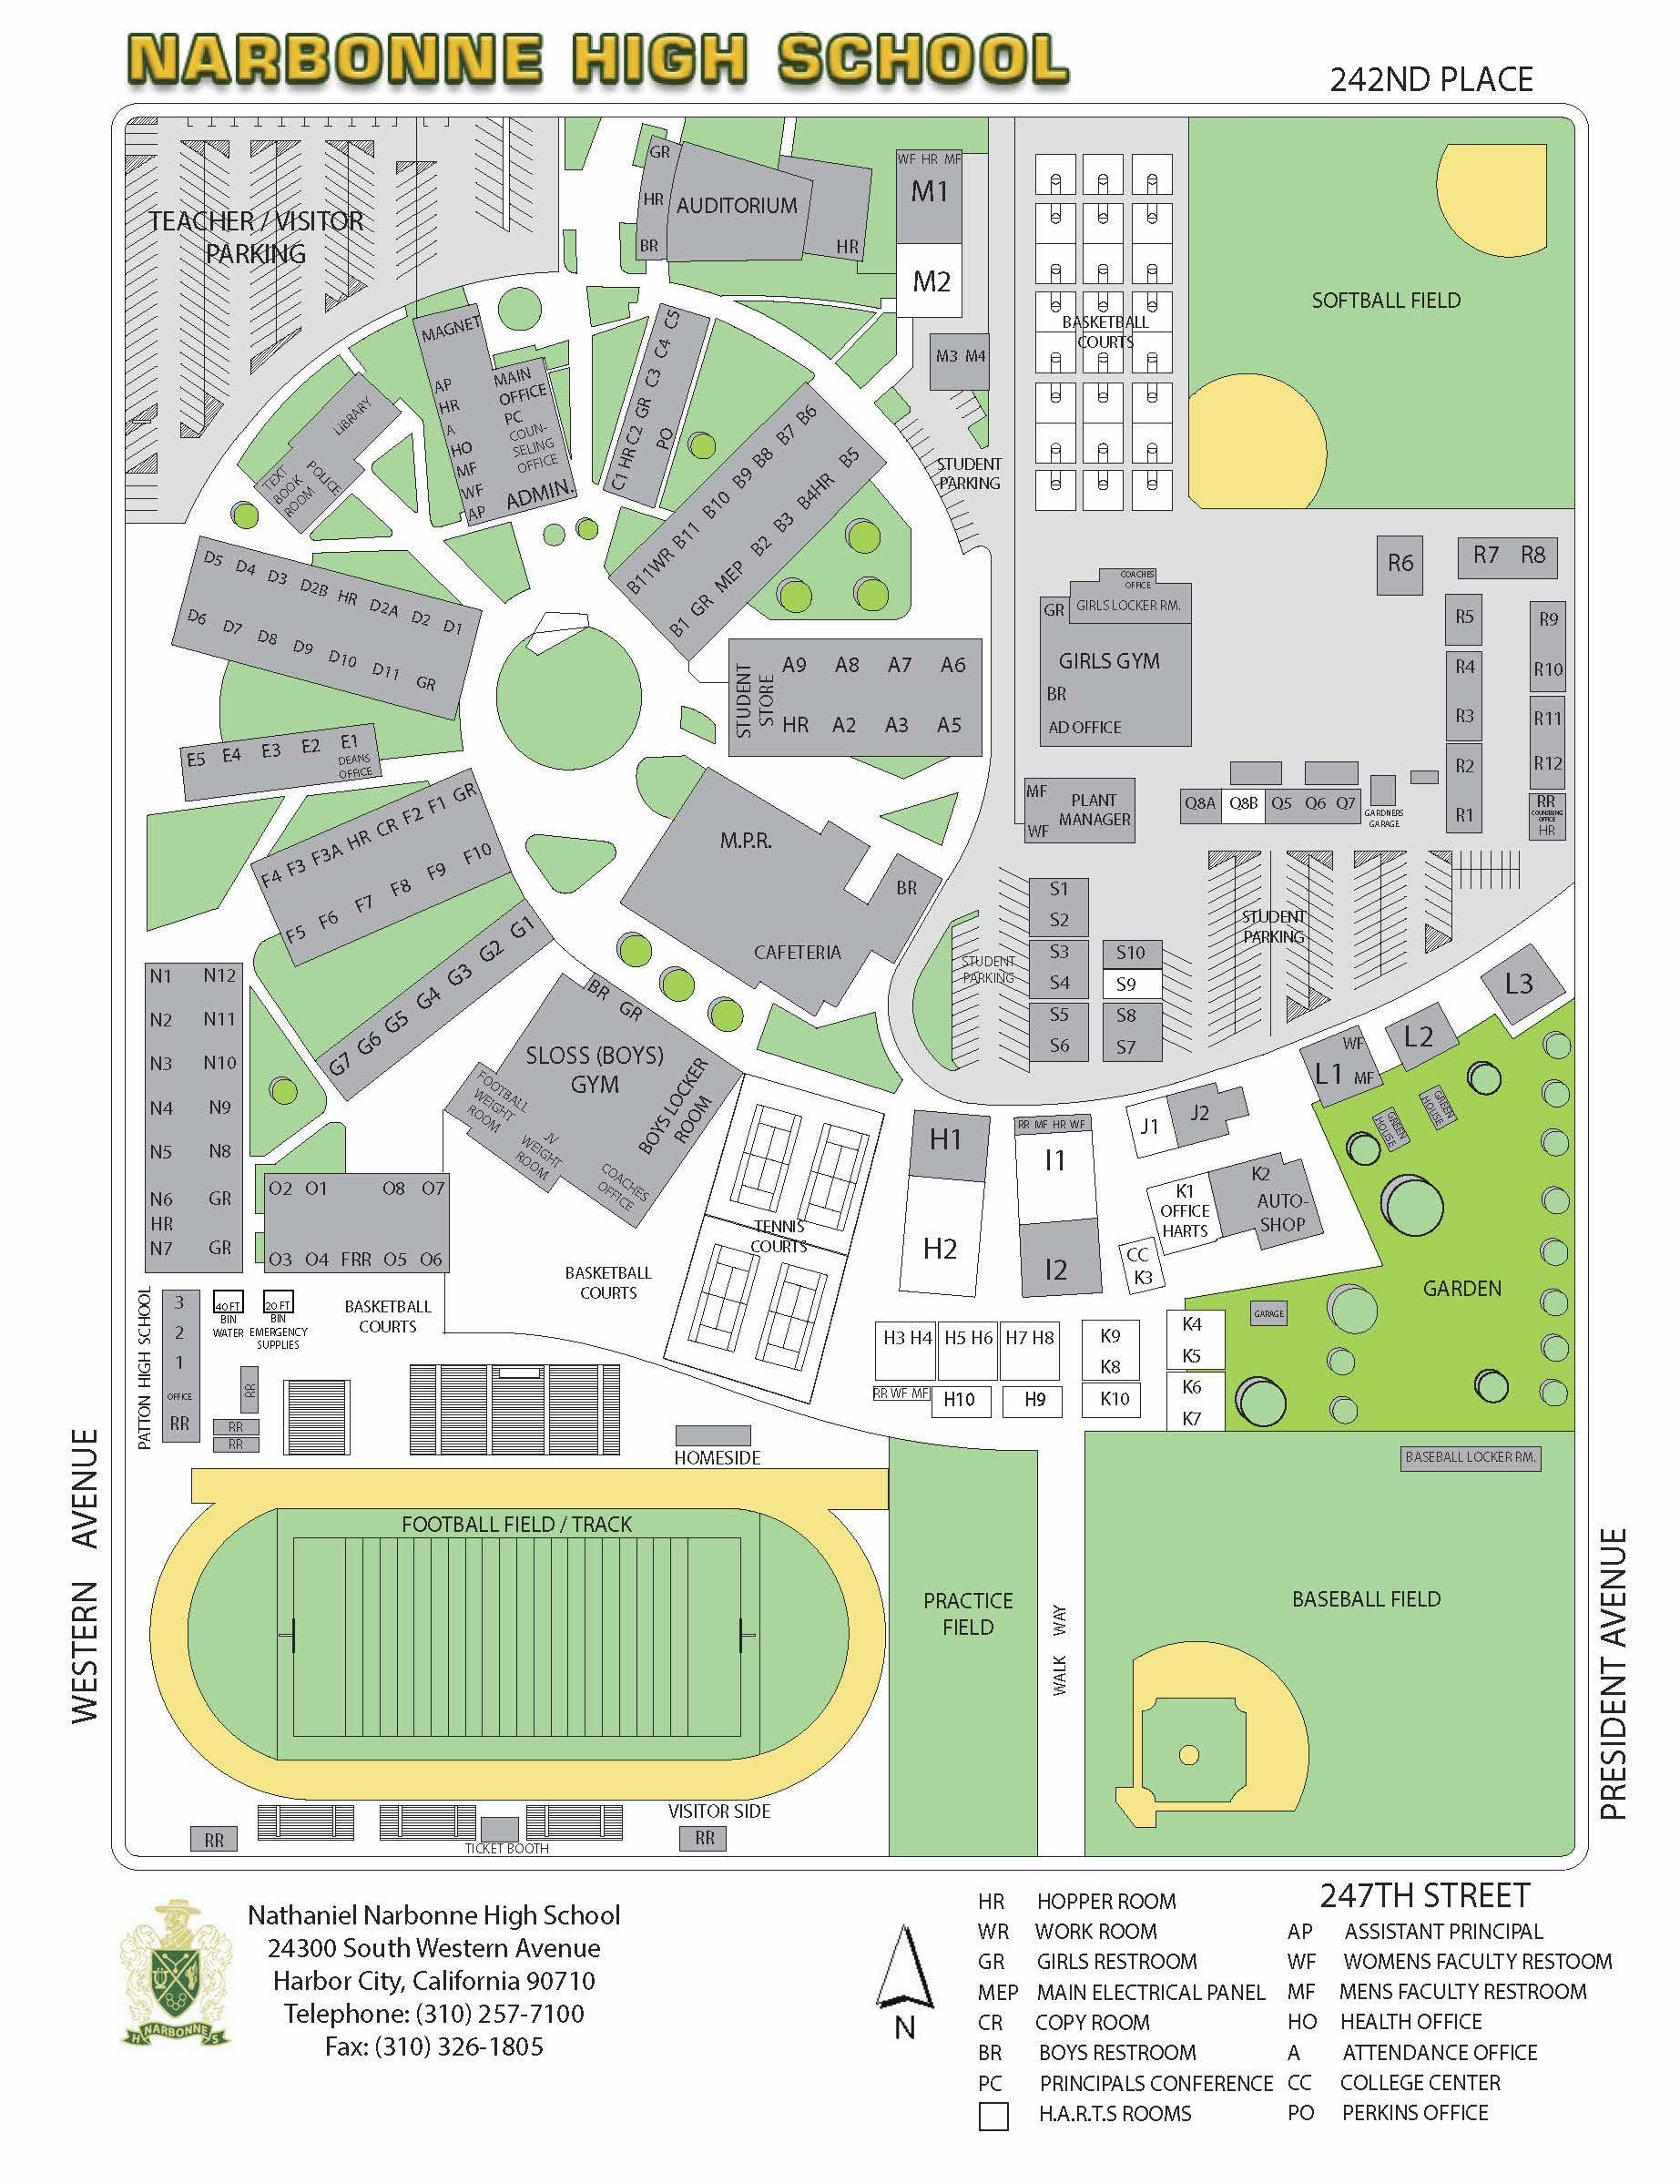 School Campus Map.Campus Map And Directions About Us Nathaniel Narbonne High School